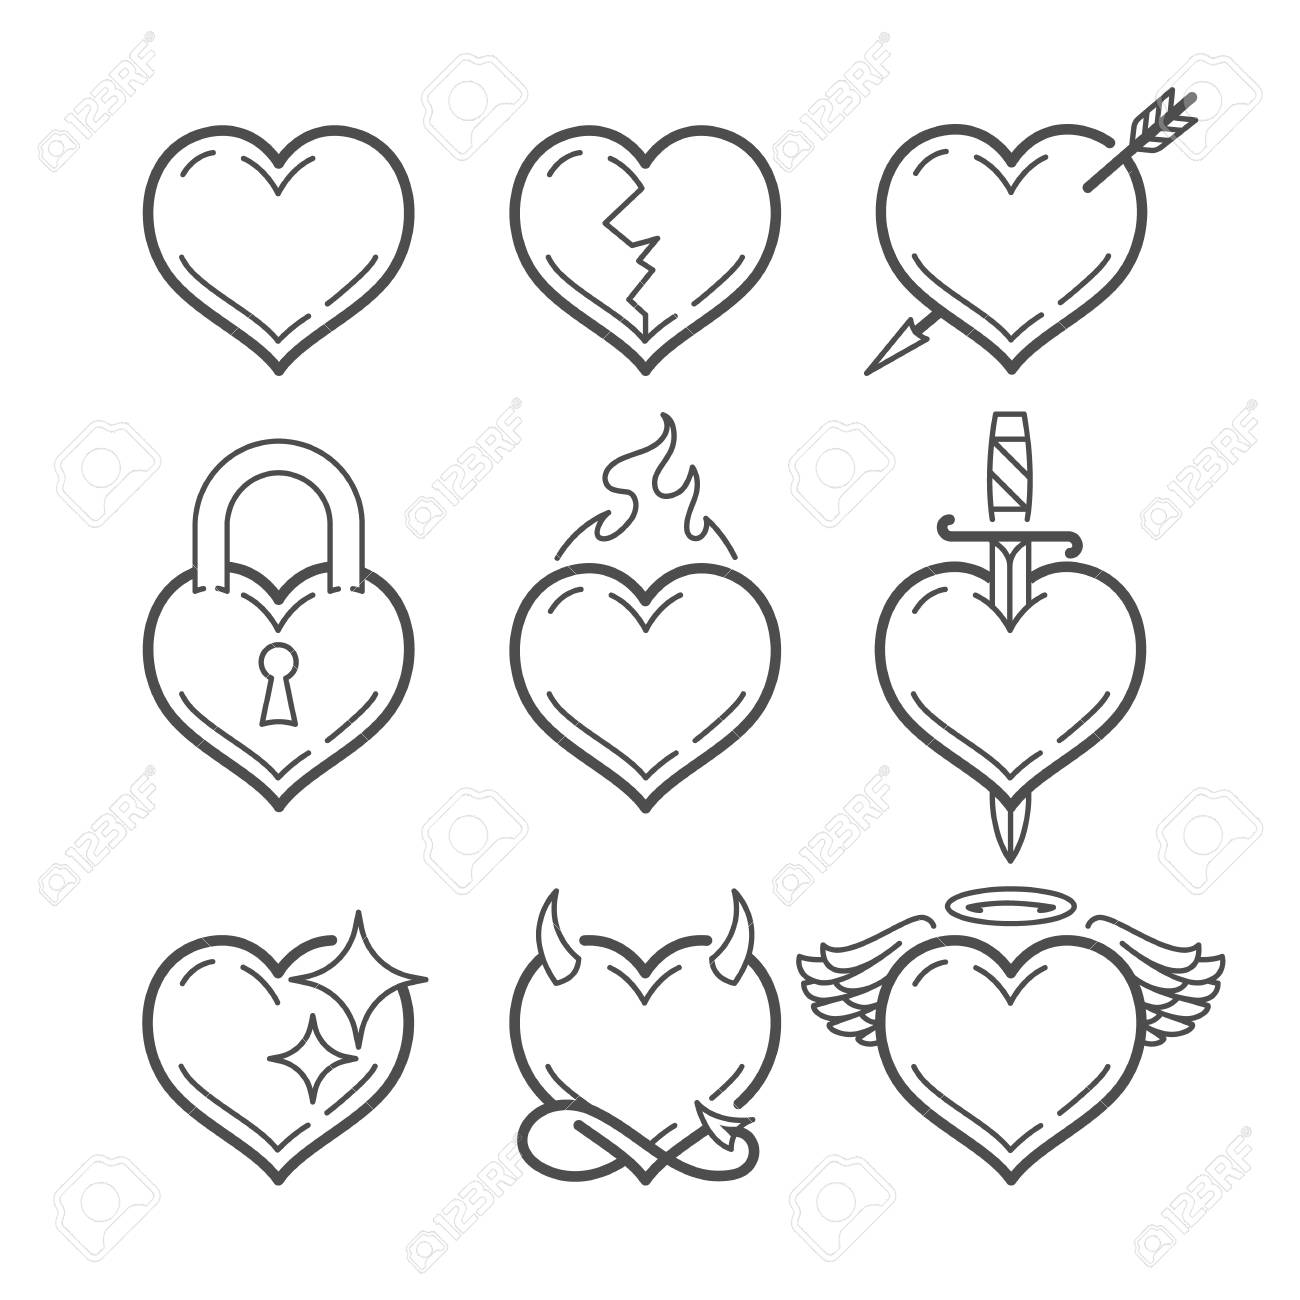 Set of line art vector hearts with different elements isolated on white. Heart shape line art icons. - 121706246